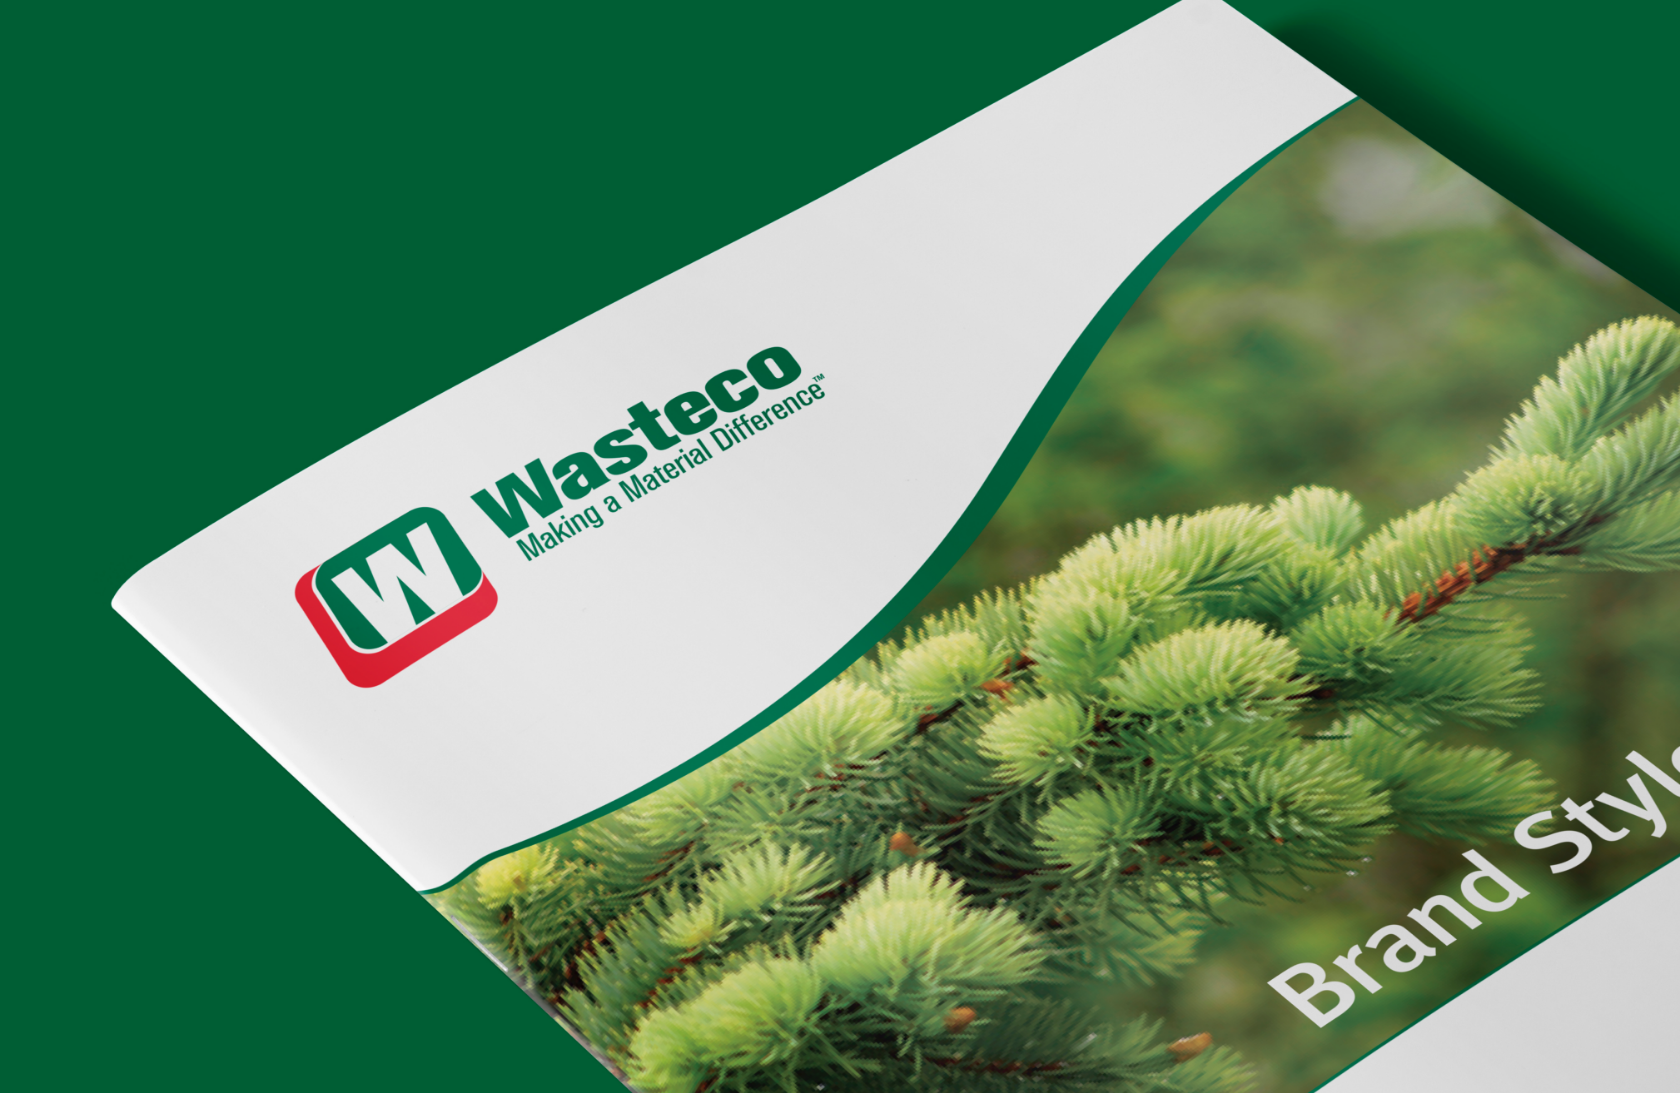 Wasteco - Brand Guidelines Cover